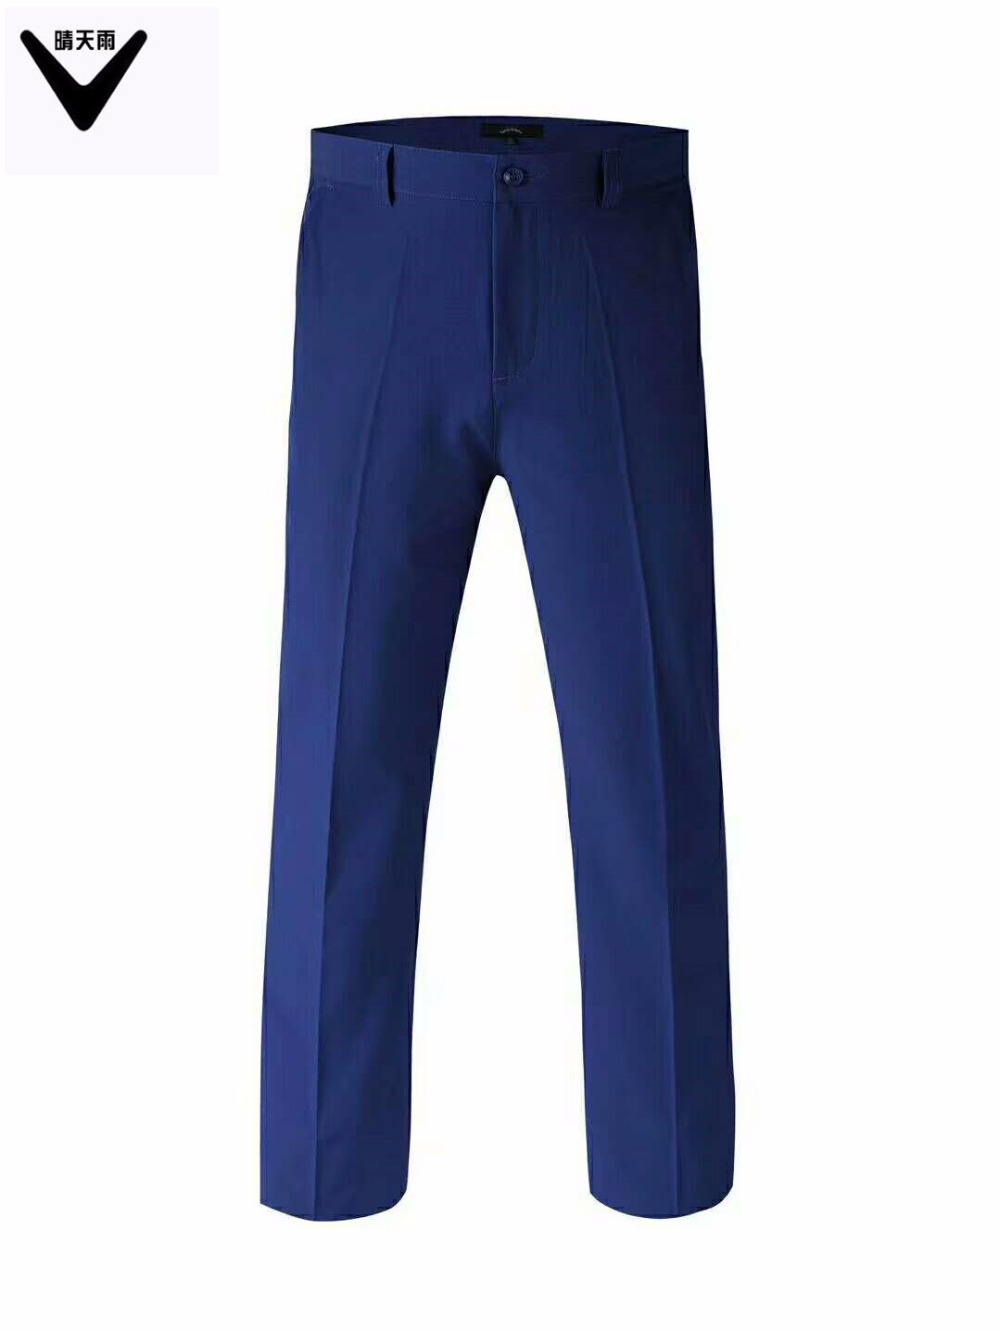 Summer mens High quality Golf sports pants men Elasticity breathable quick-drying golf trousers golf Sportswear plus size 40